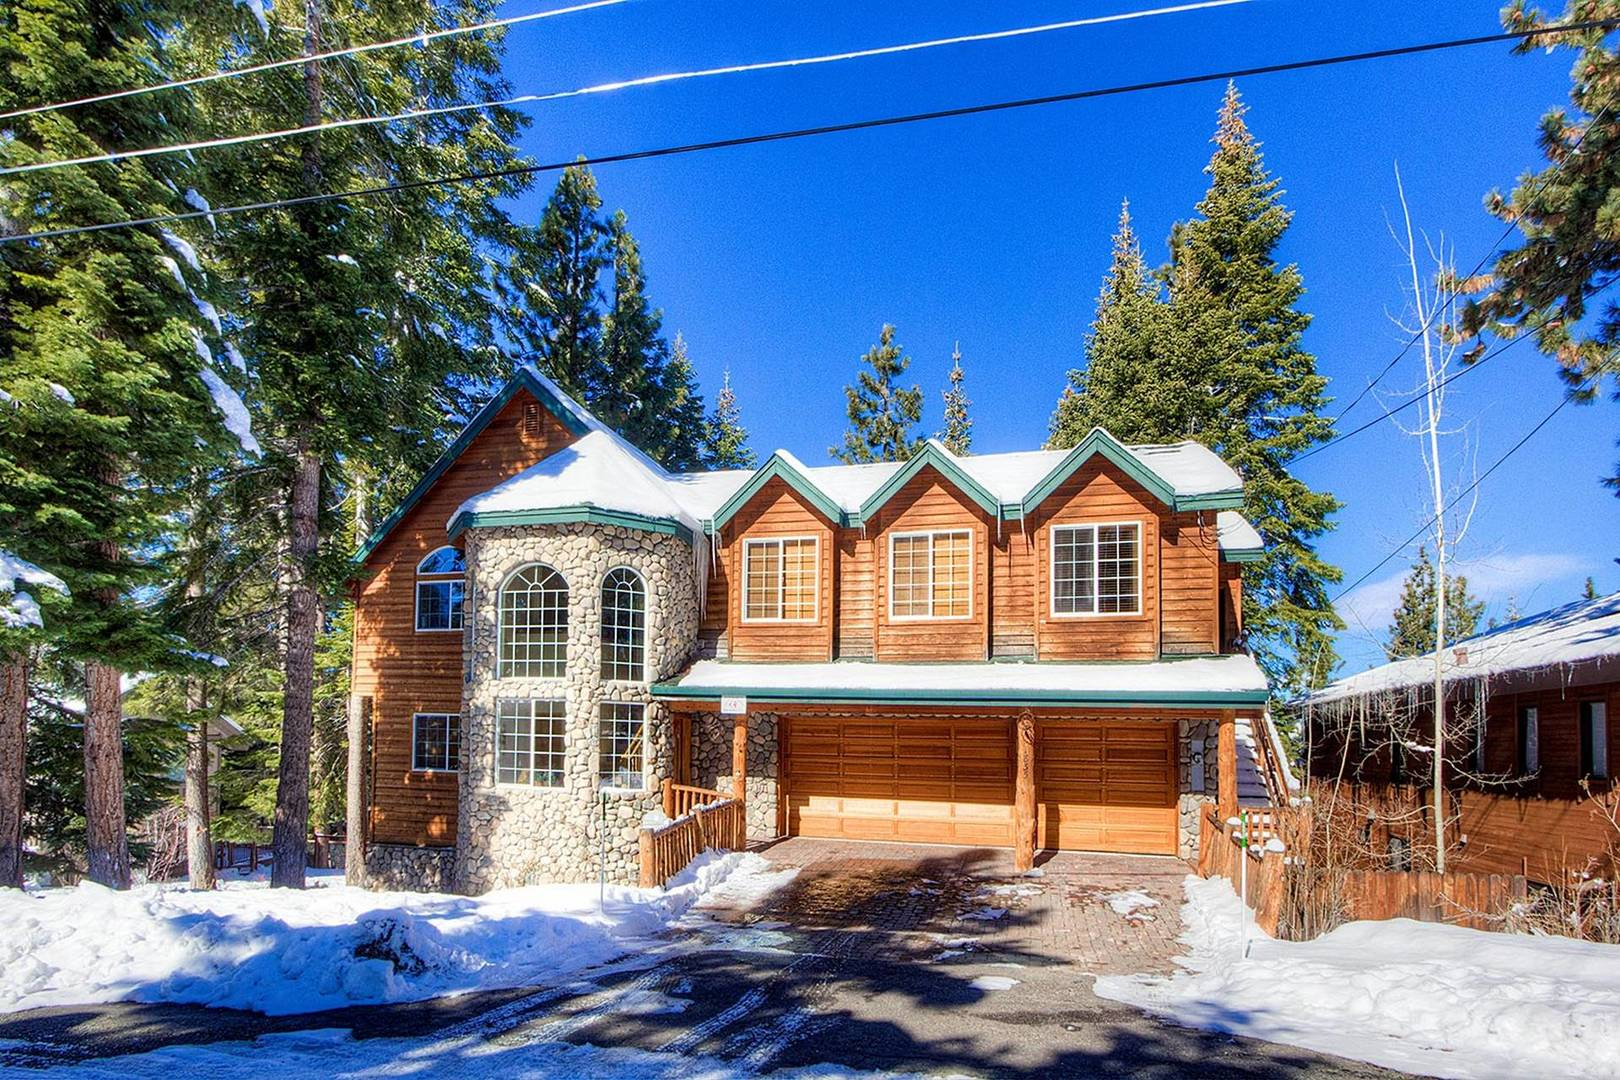 hch1435 lake tahoe vacation rental